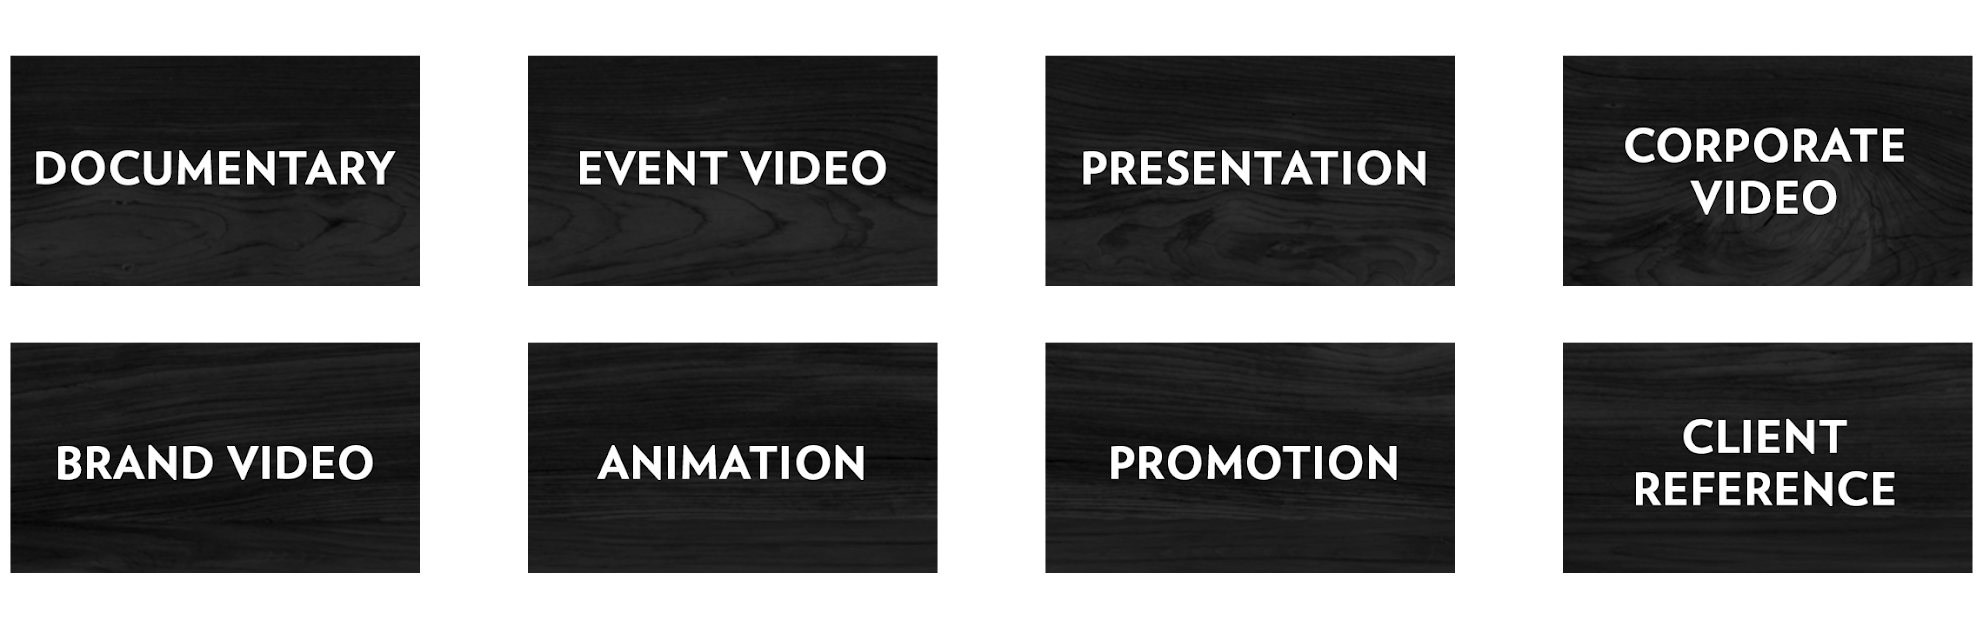 documentary, event video, brand video, animation, presentation, promotional video, corporate video, marketing video, web video